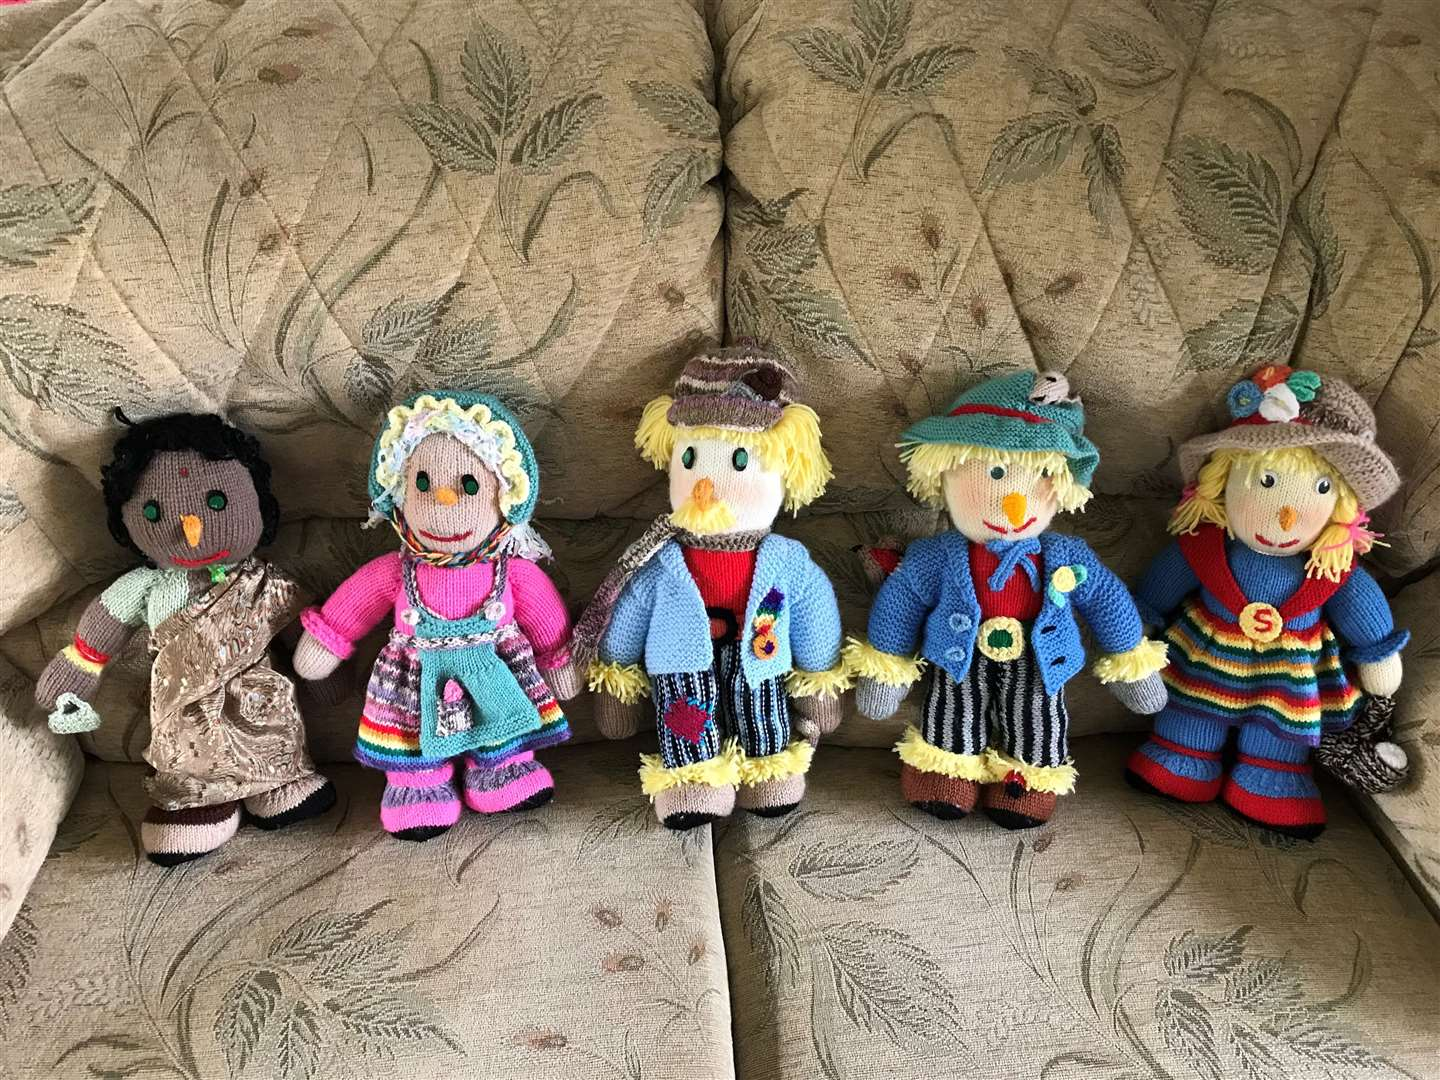 Knitted scarecrows (2546658)